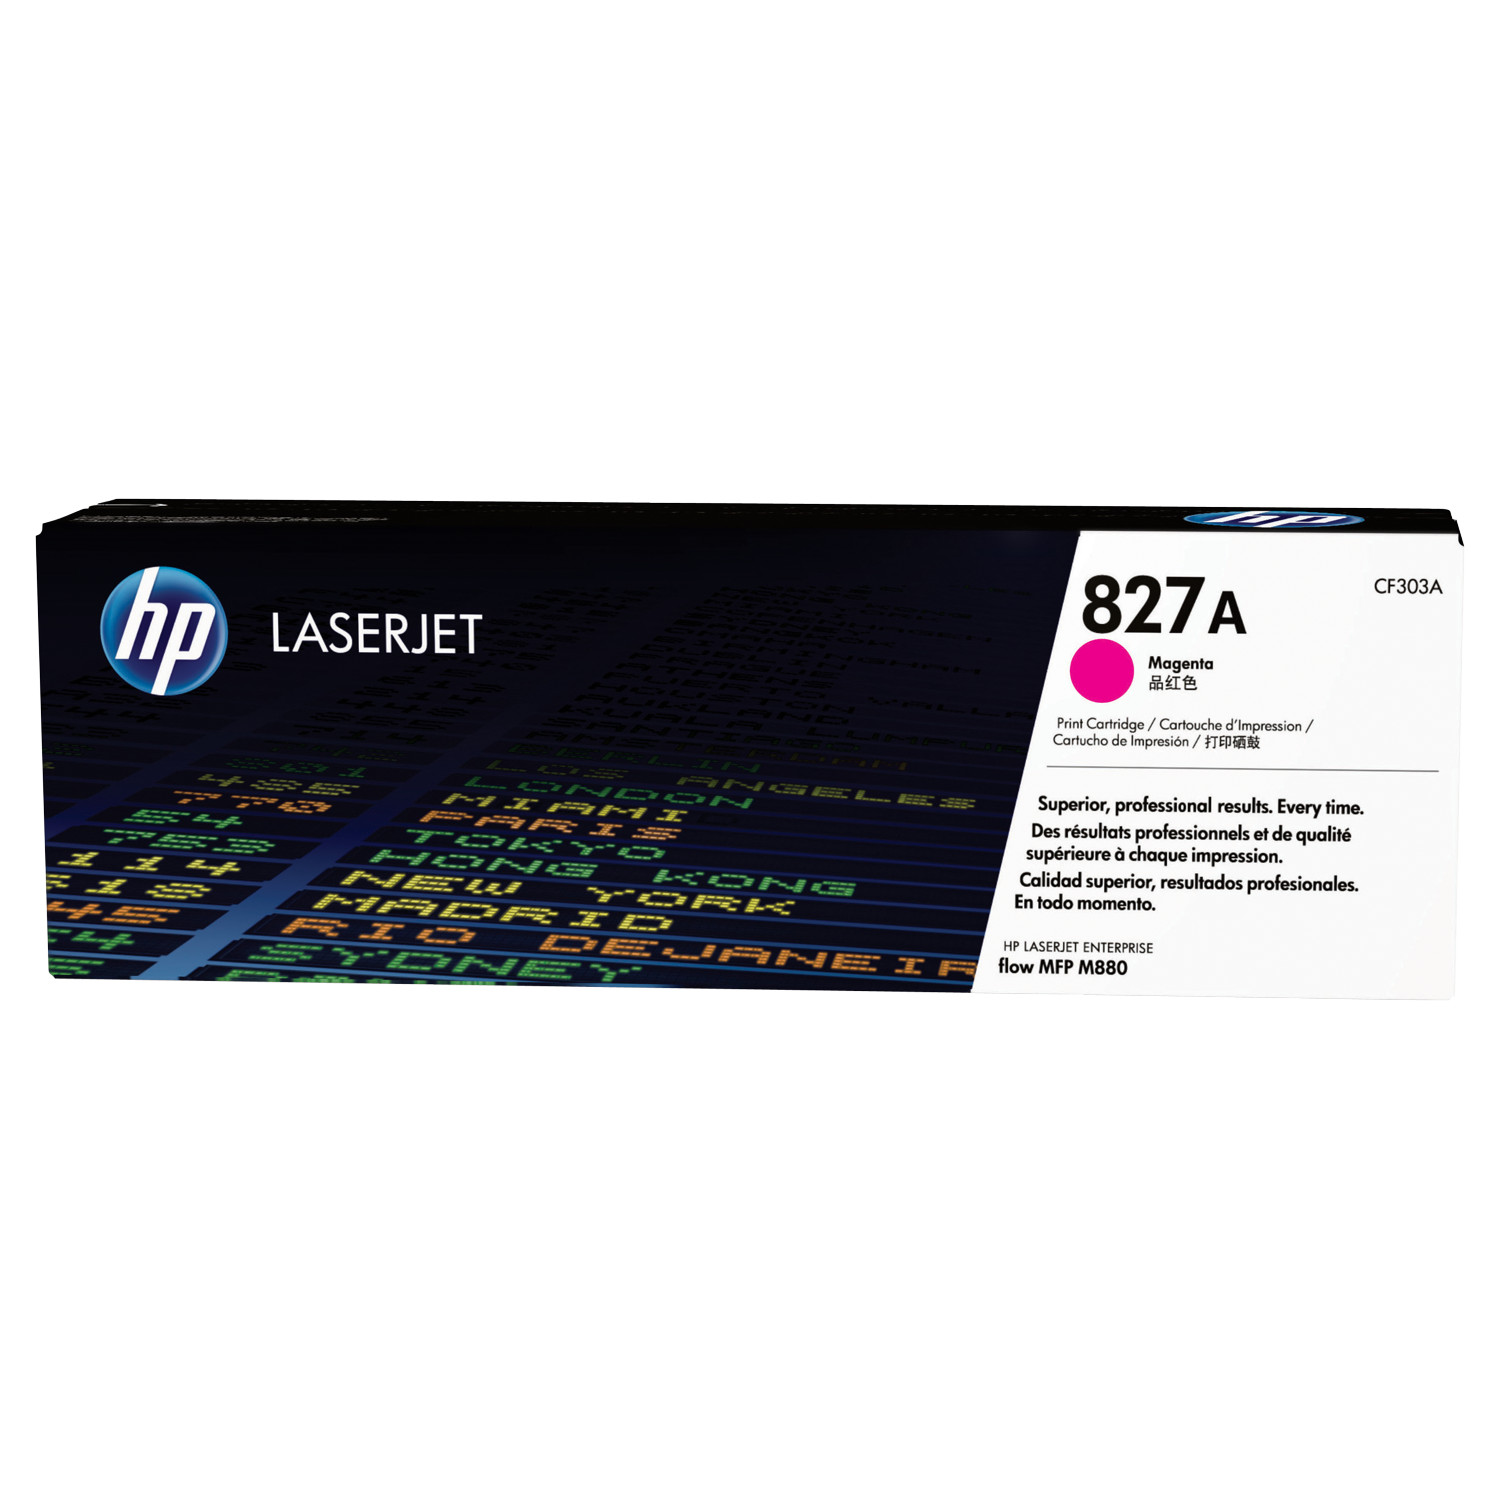 hp 827a cf303a cartouche de toner hp laserjet magenta d 39 origine grand toy. Black Bedroom Furniture Sets. Home Design Ideas